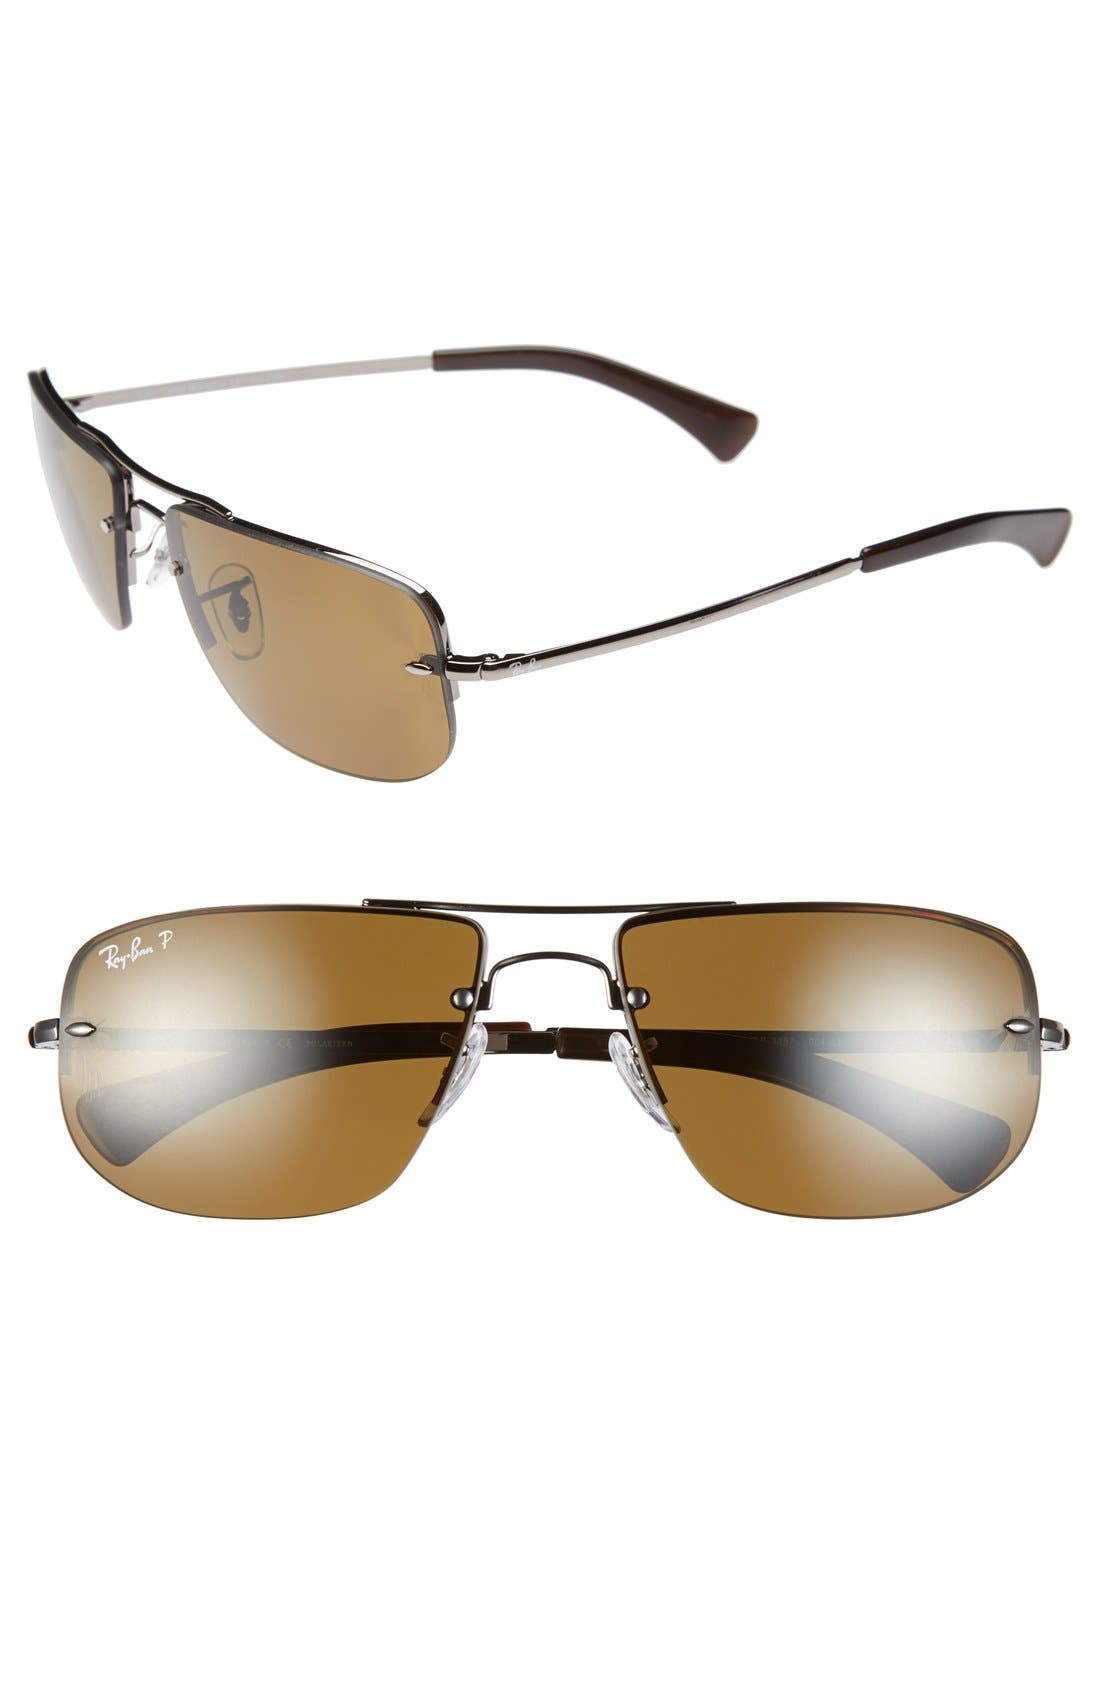 Alternate Image 1 Selected - Ray-Ban 59mm Polarized Semi Rimless Sunglasses